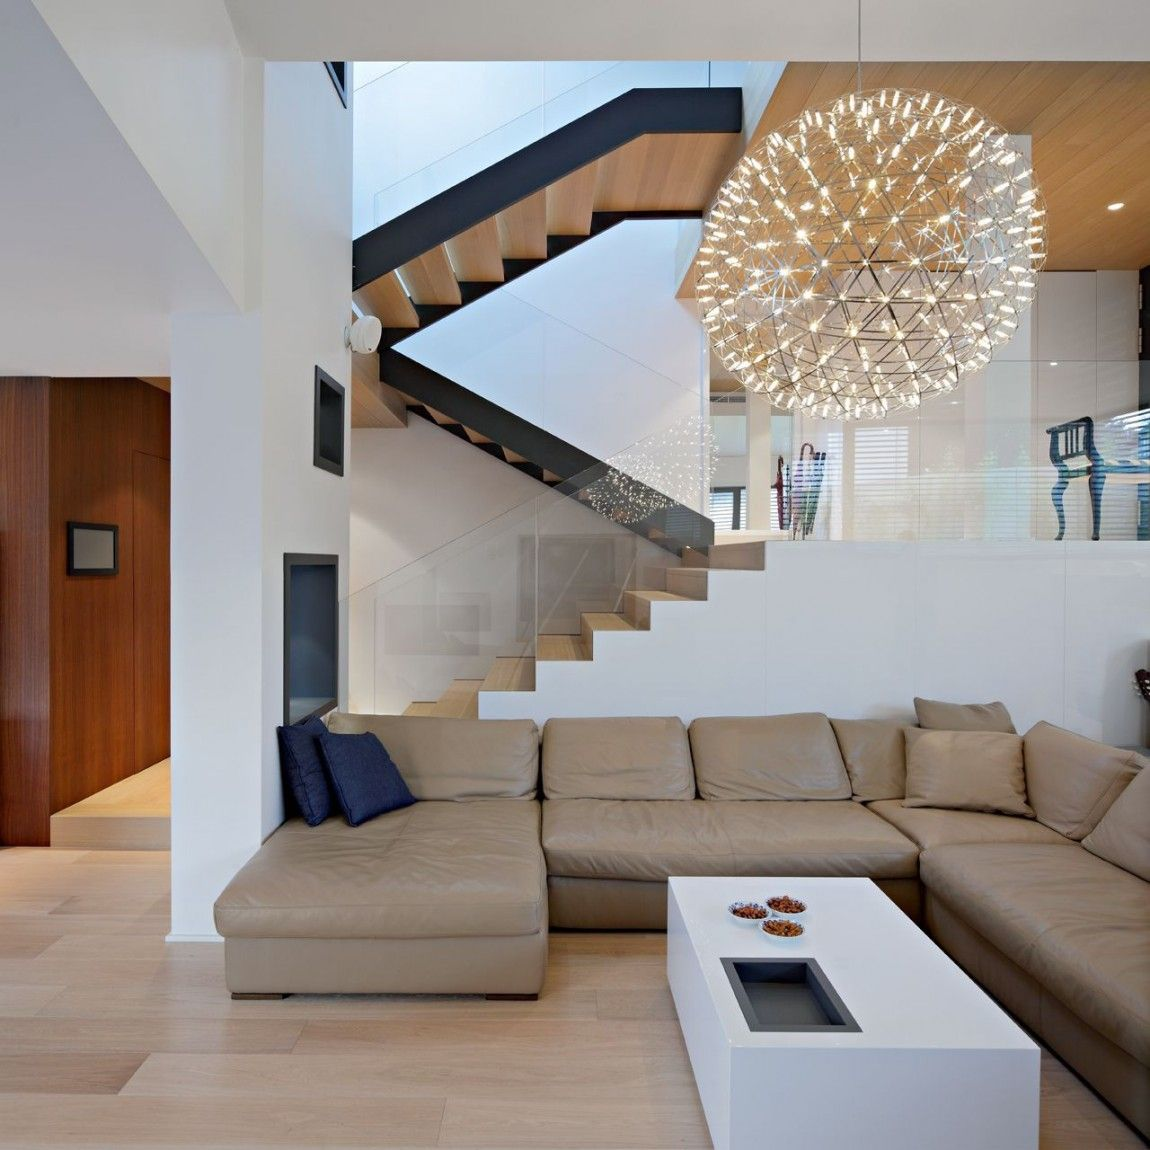 Living Room4 Modern Family House Boasting an Irregular Geometric ...